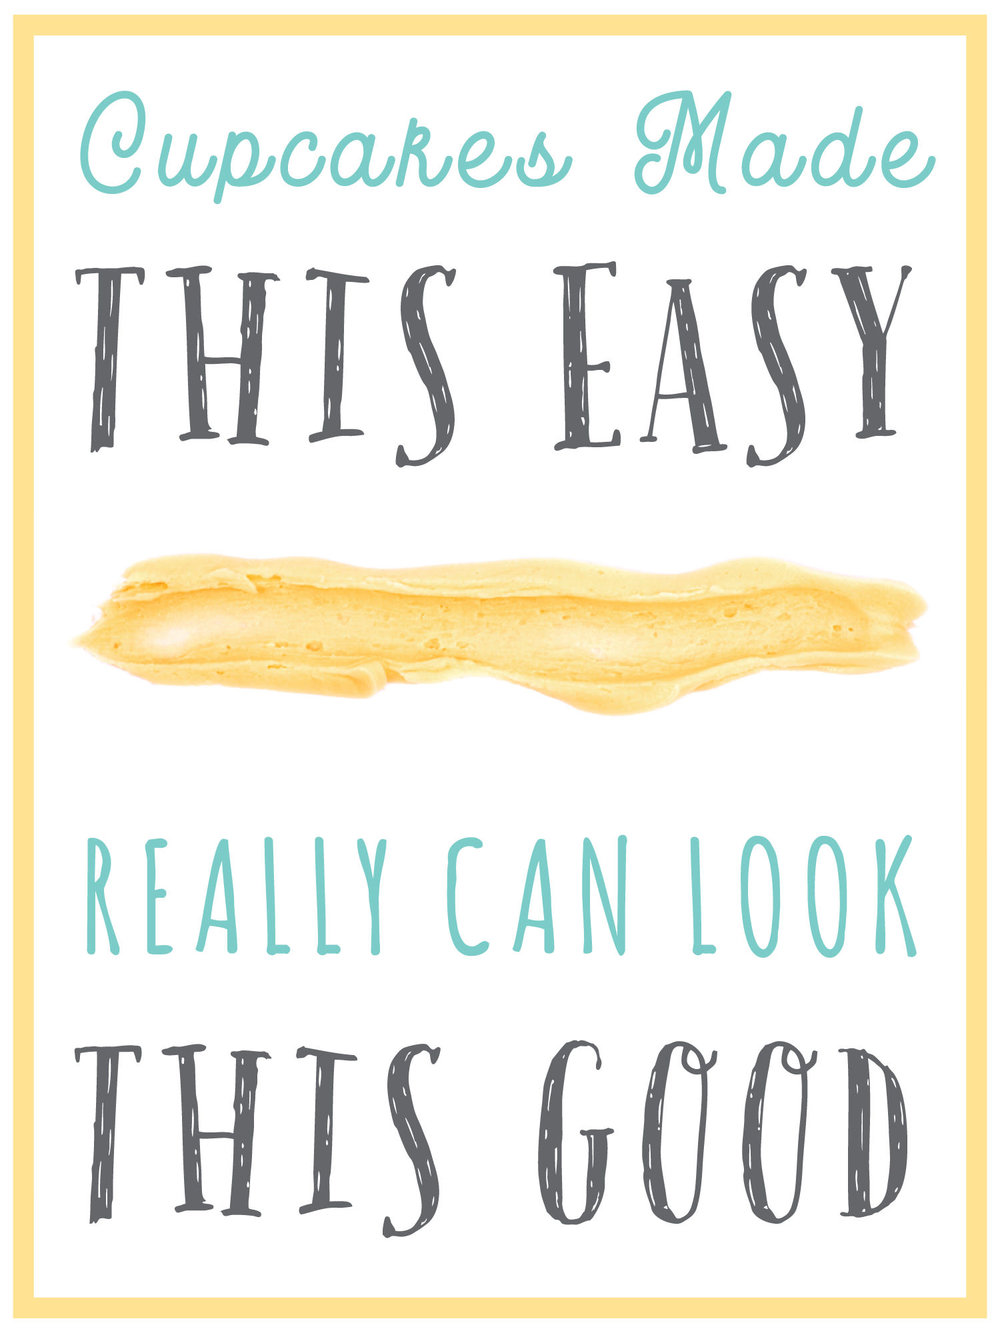 royal-icing-baking-supply-cupcakes-this-easy-really-can-look-this-good-calligraphy-quote-cupcake-wrappers-cupcake-papers-capcake-cases-cupcake-picks.jpg